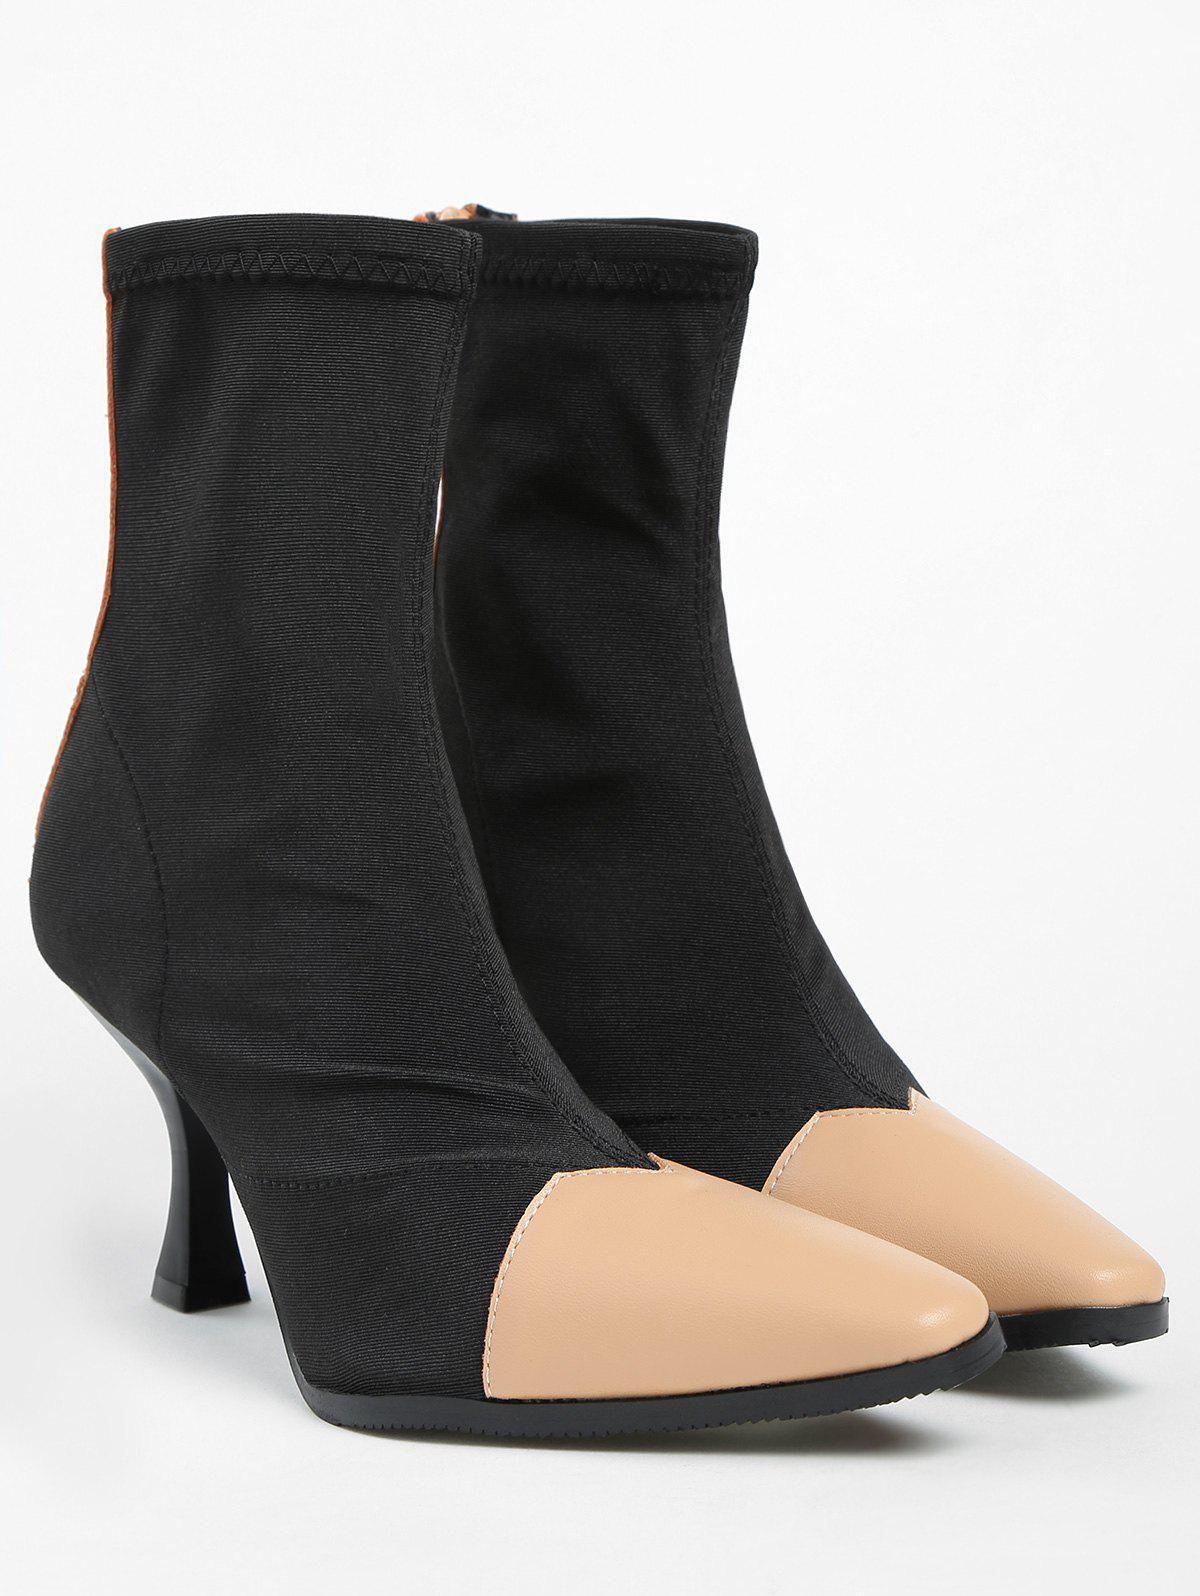 Pointed Toe Cap High Heel Ankle Boots - APRICOT 38